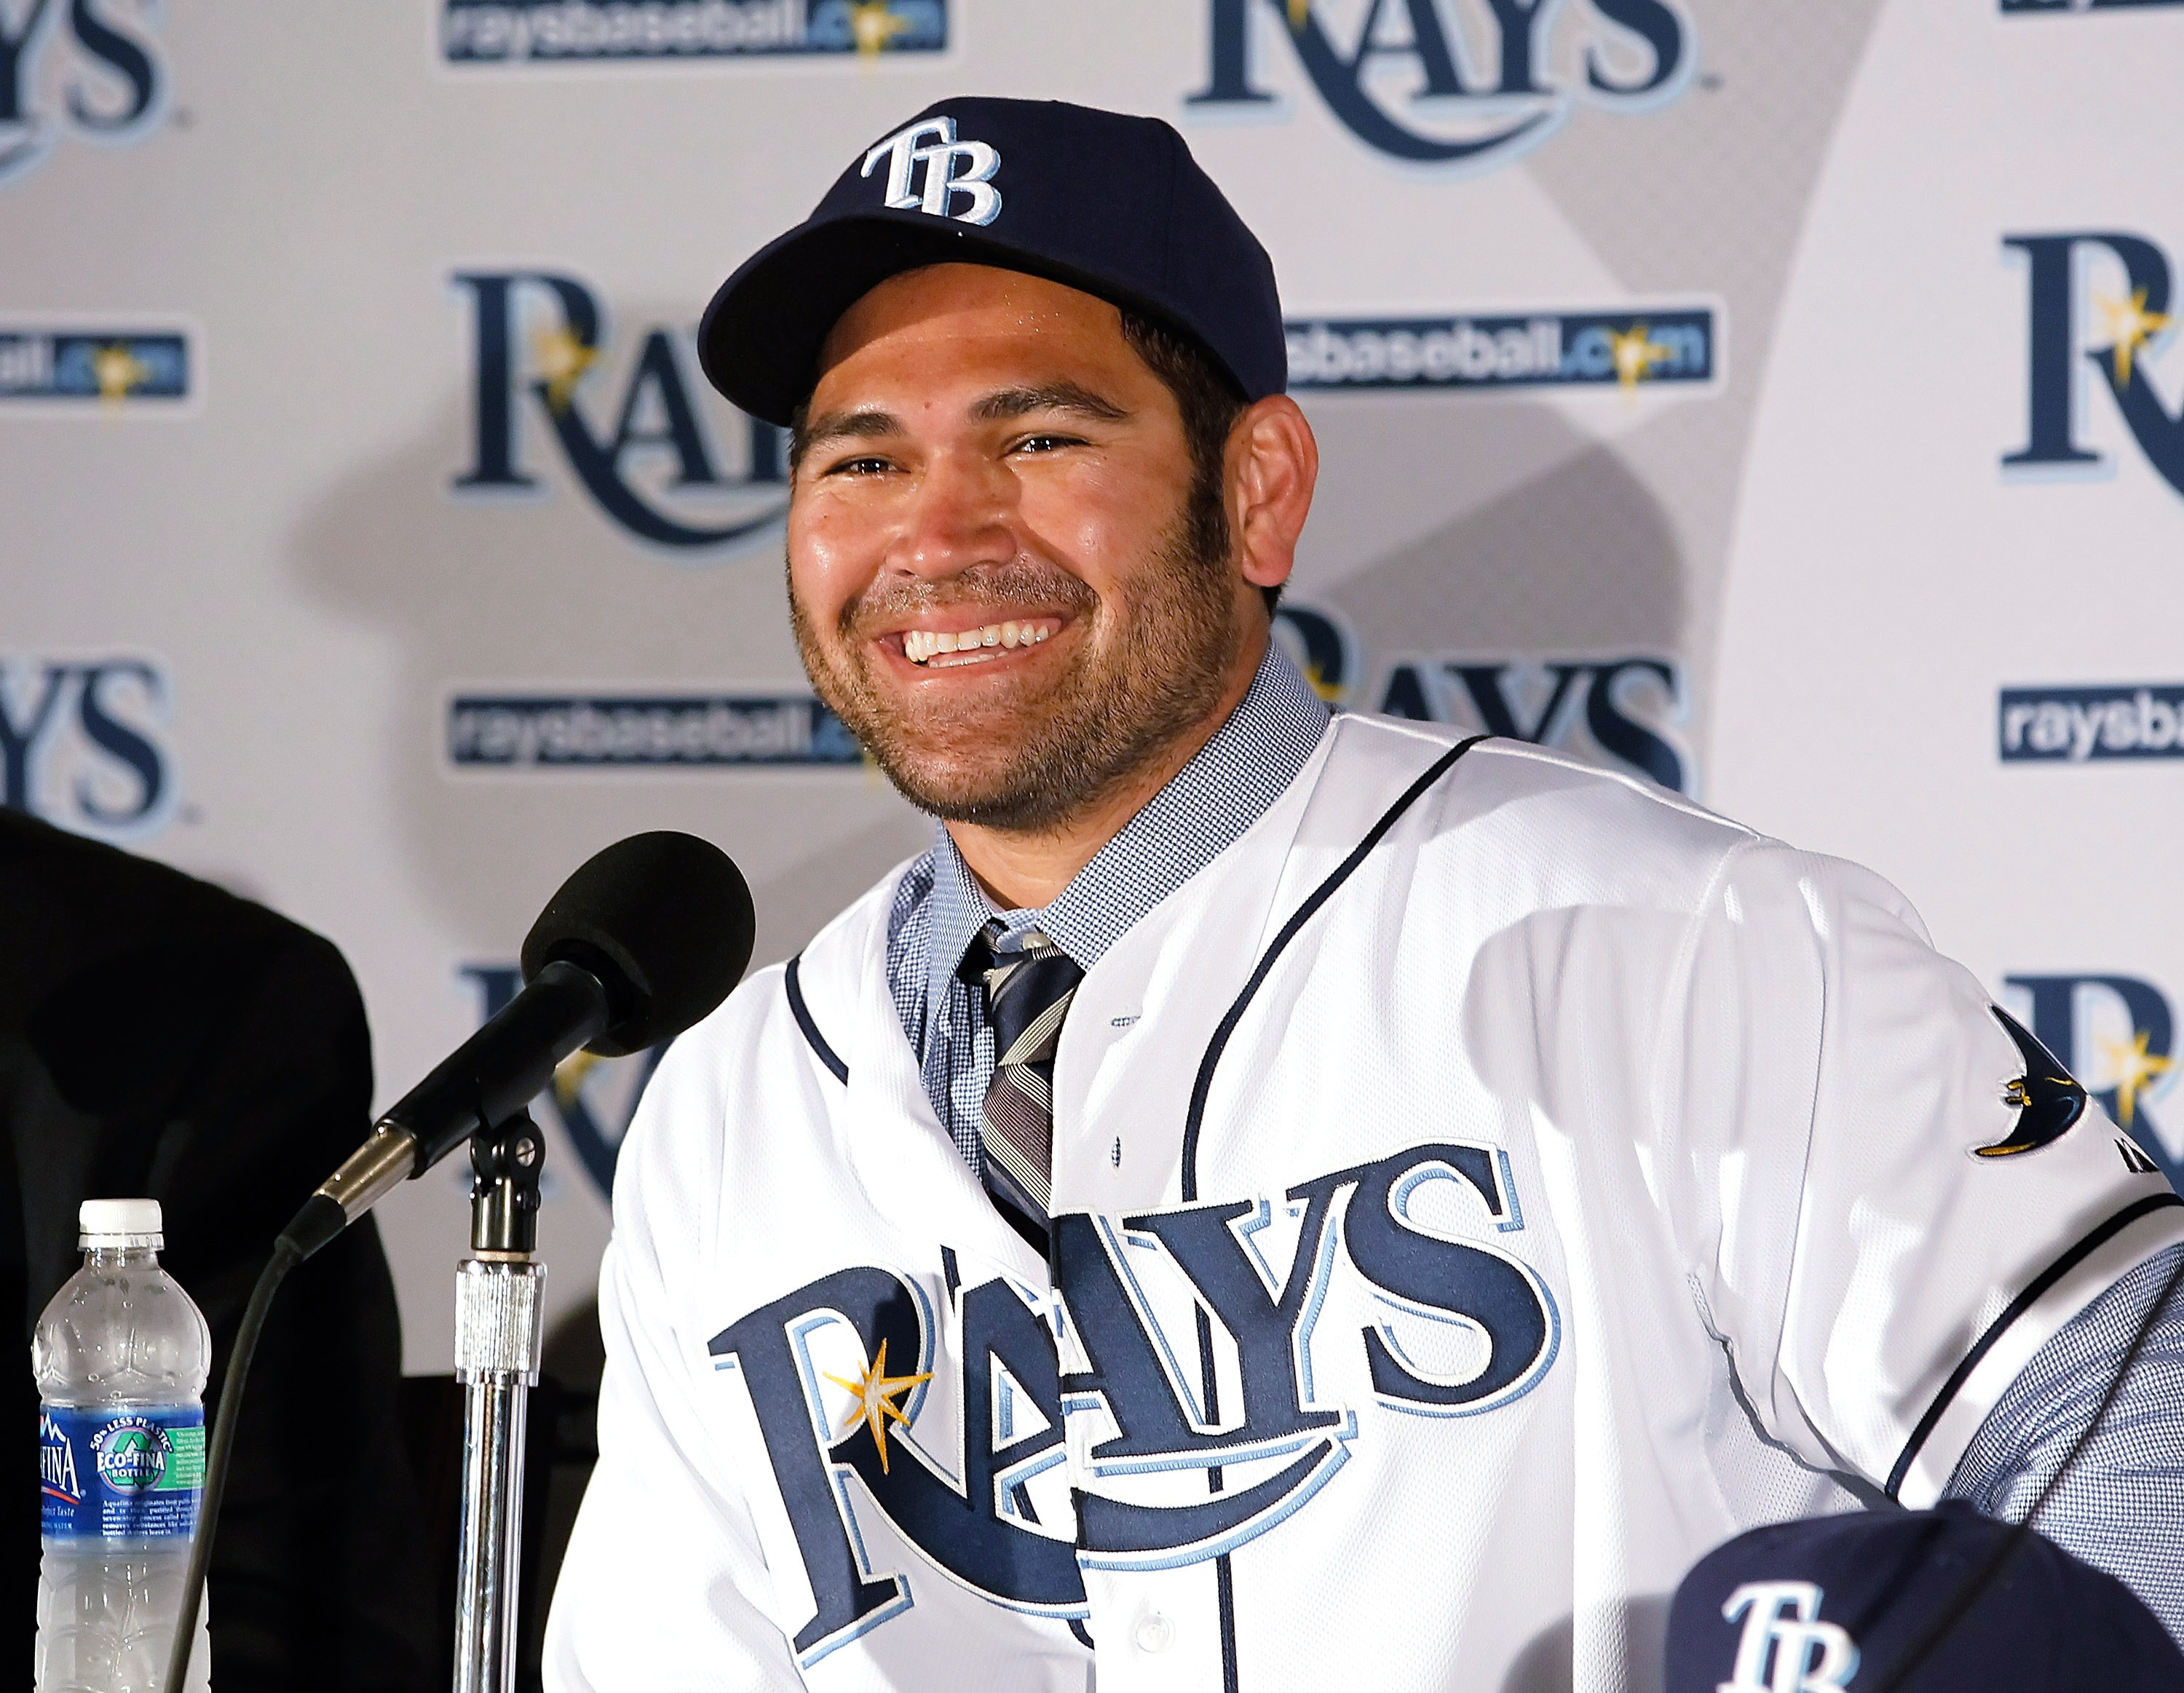 ST PETERSBURG, FL - FEBRUARY 01:  Johnny Damon #22 of the Tampa Bay Rays talks with reports during a press conference at Tropicana Field on February 1, 2011 in St. Petersburg, Florida.  (Photo by J. Meric/Getty Images)